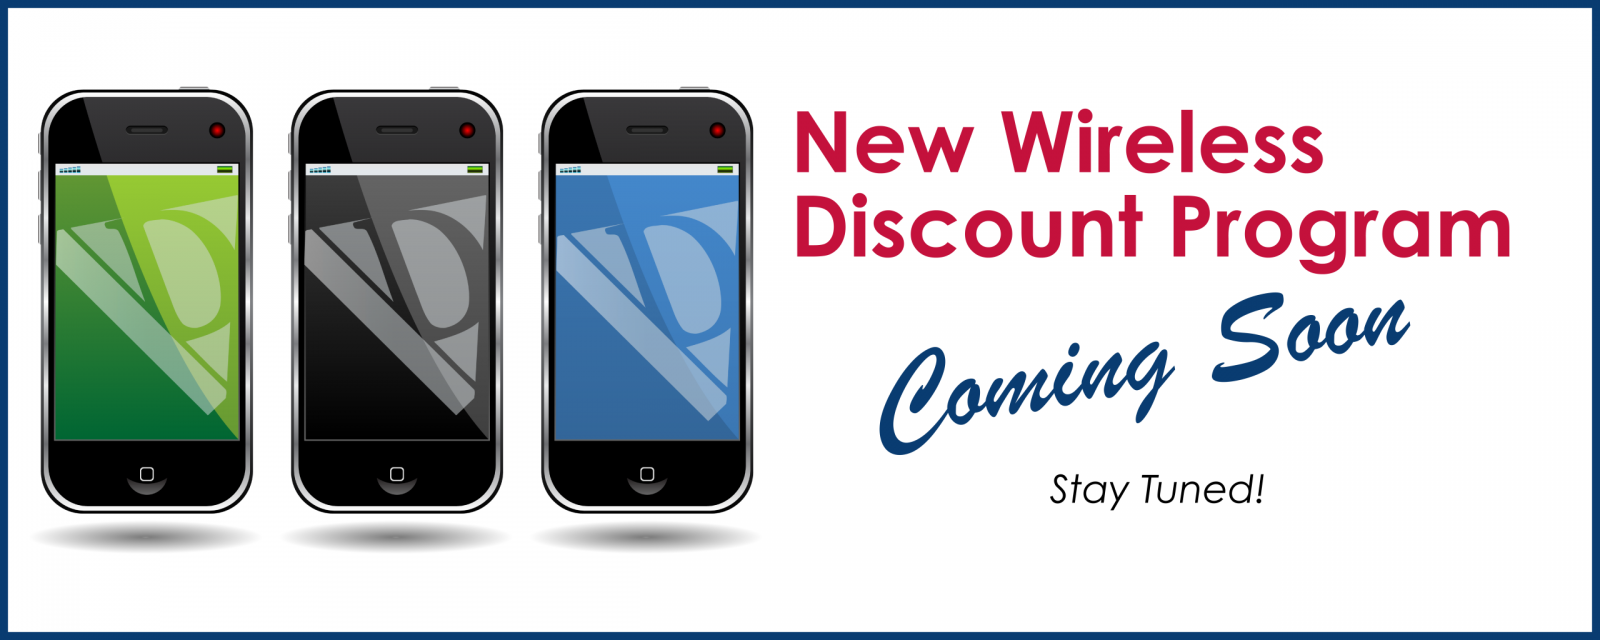 New Wireless Discount Program - COMING SOON!